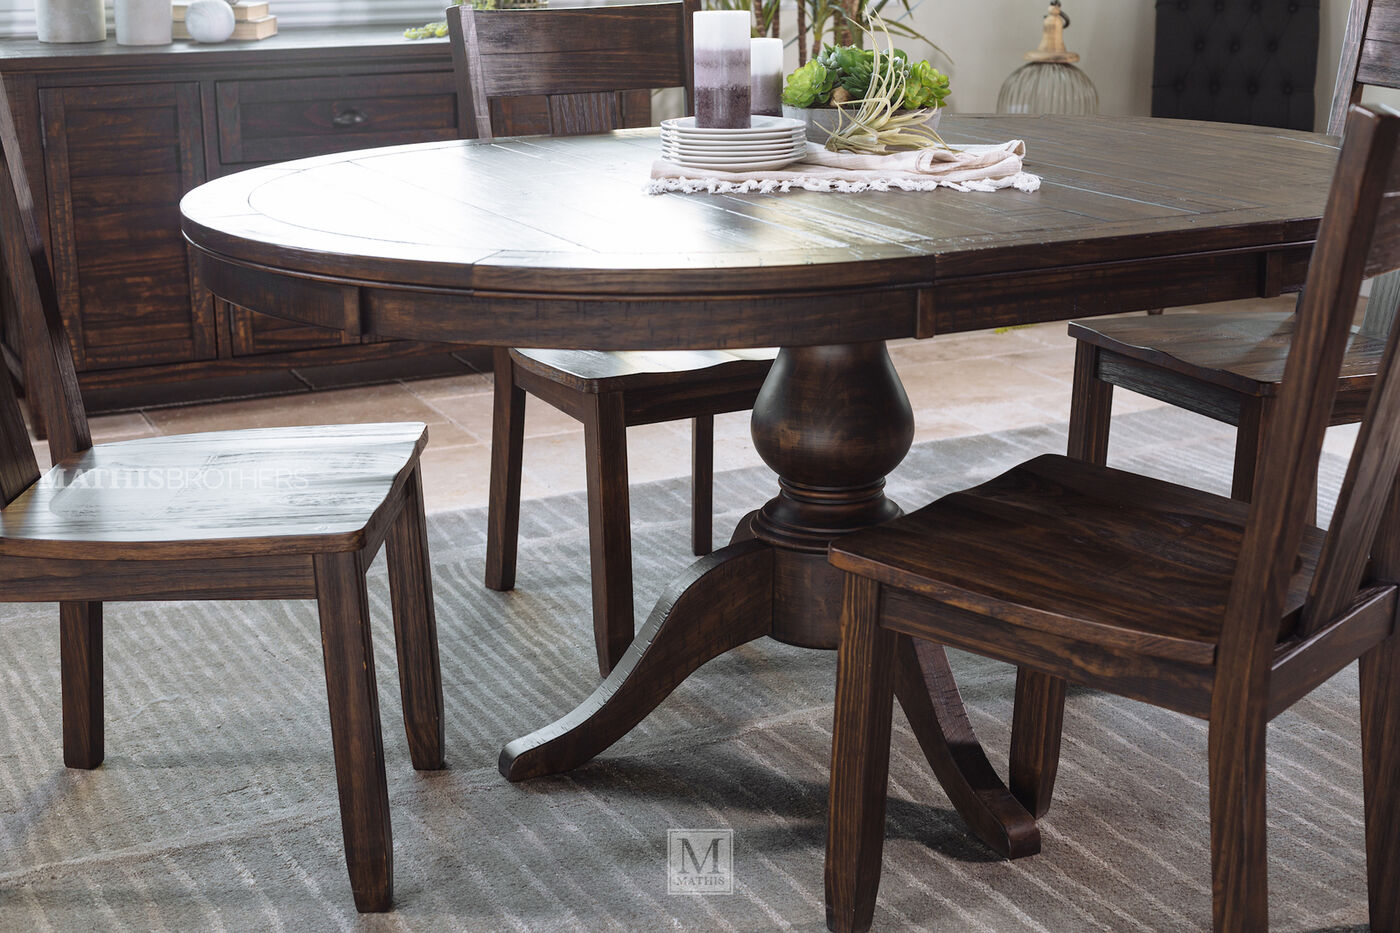 Ashley trudell round dining table mathis brothers furniture - Ashley kitchen tables ...